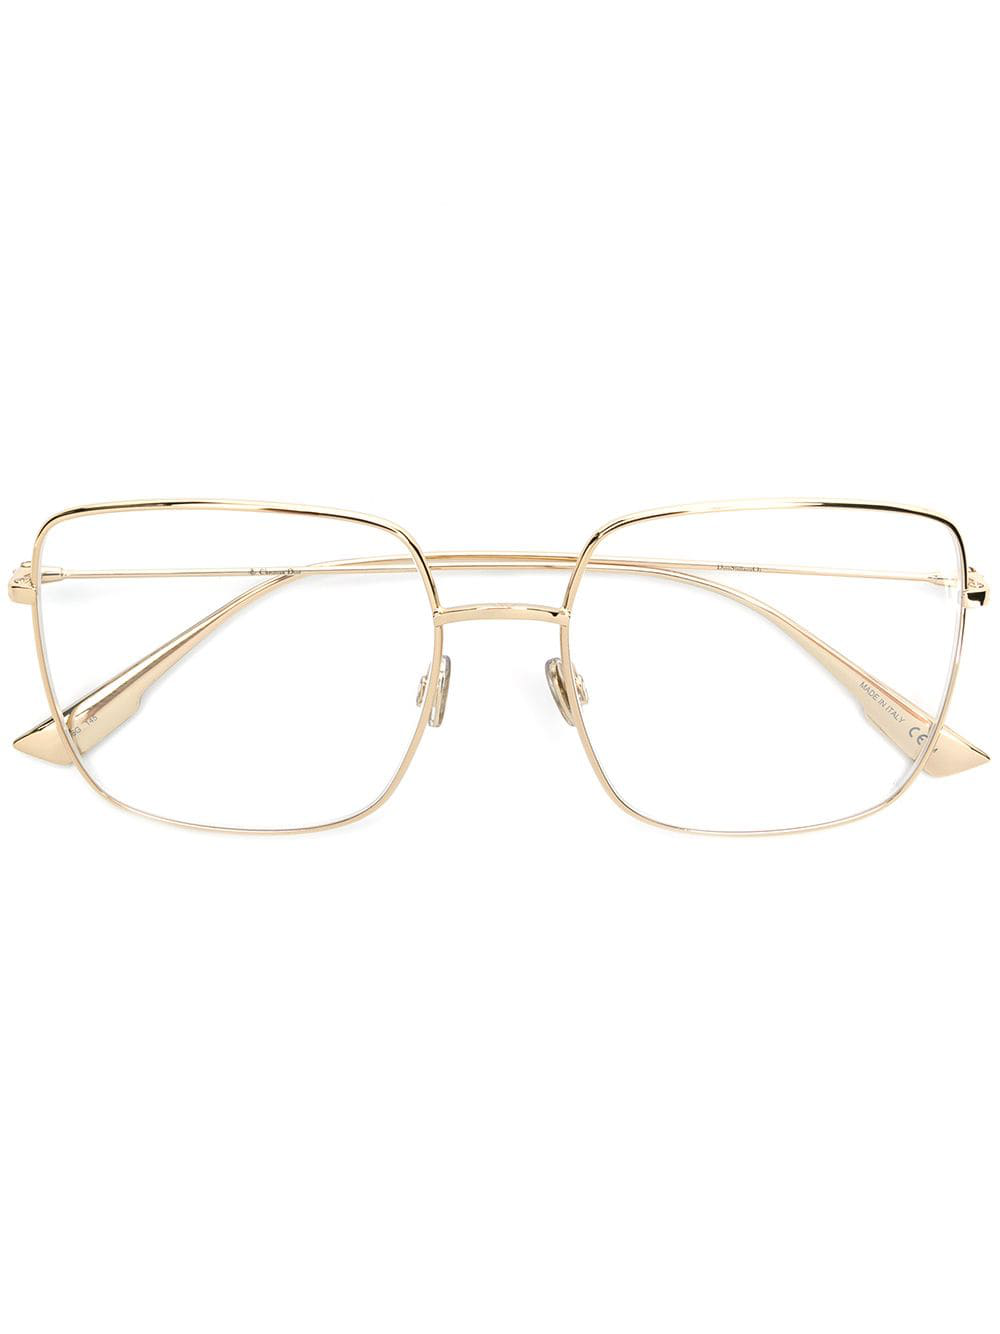 aab837dfdd Dior Eyewear Stellaire Glasses - Metallic